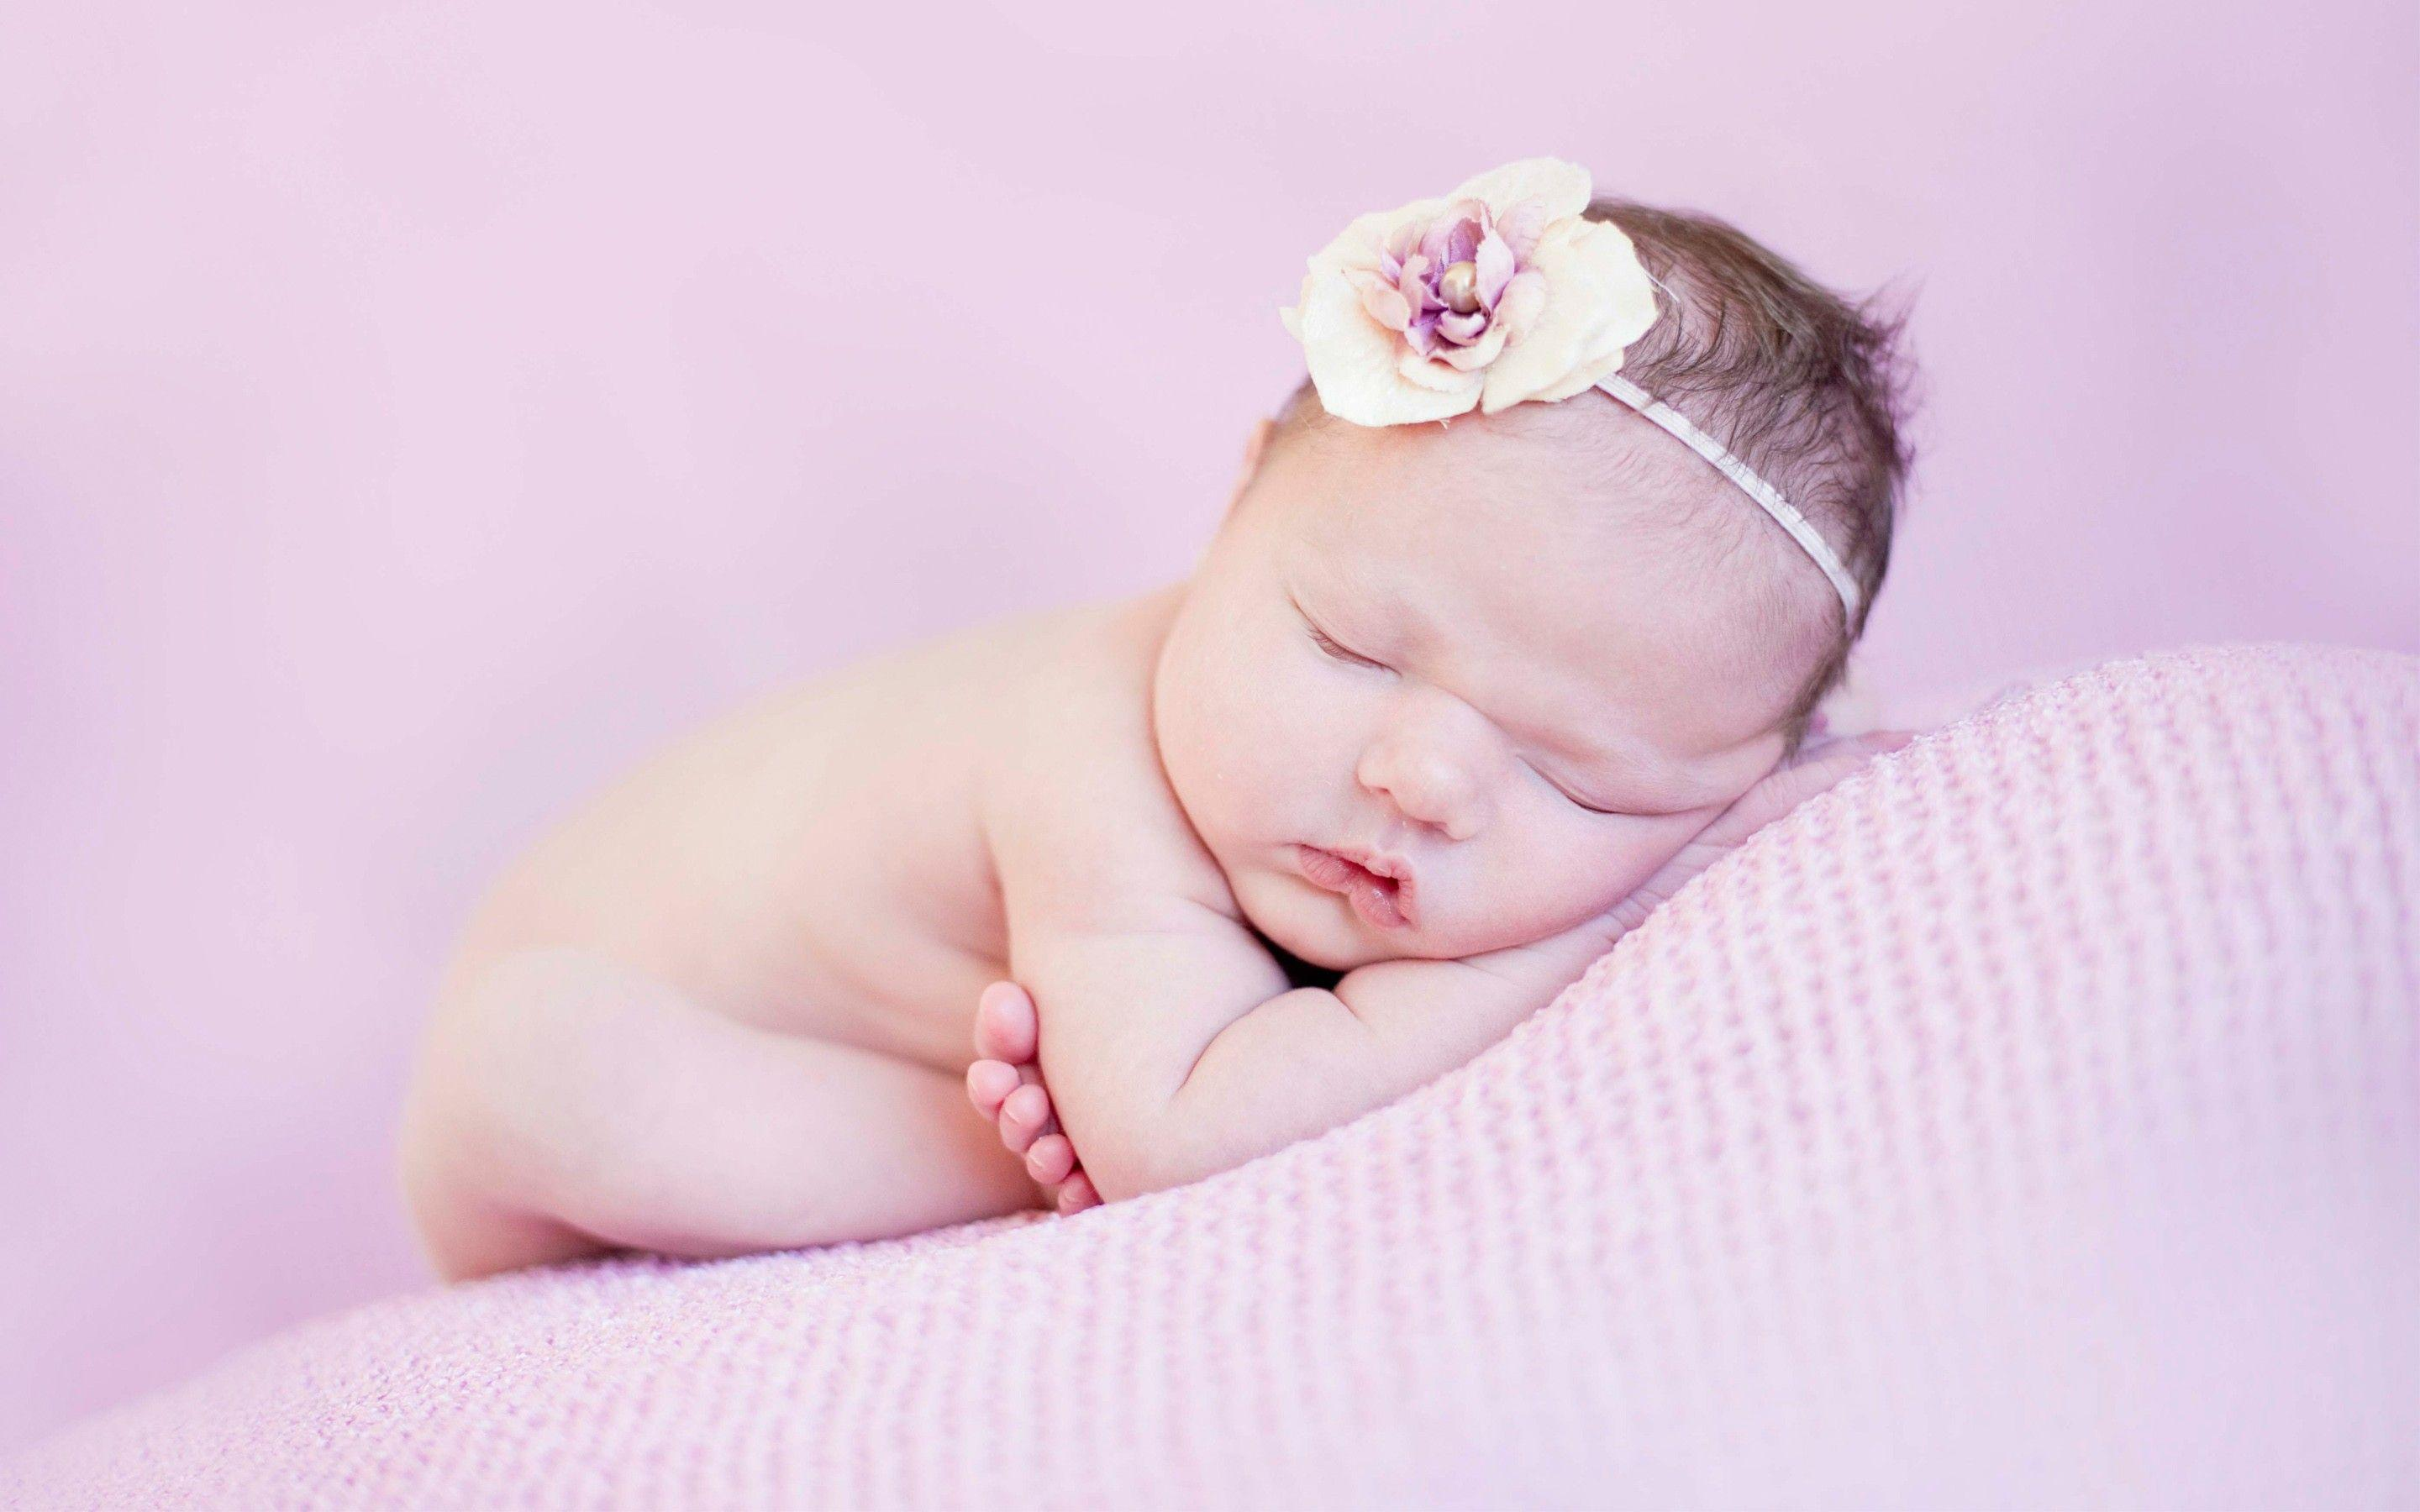 Newborn Baby Cute | Cute HD 4k Wallpapers